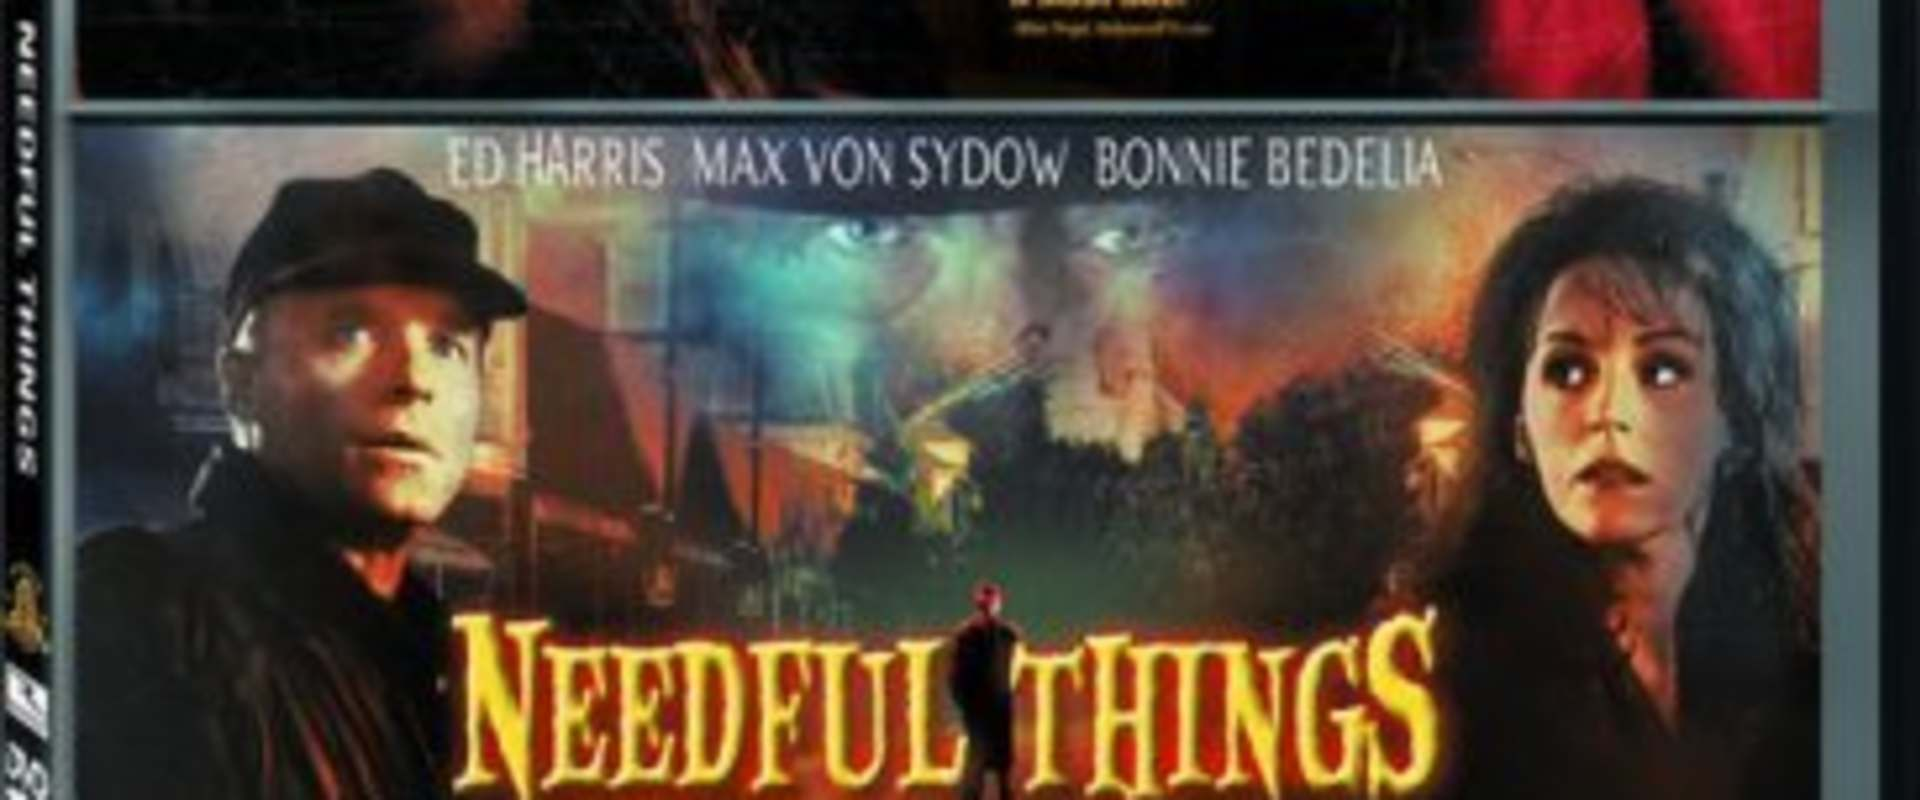 Needful Things background 2